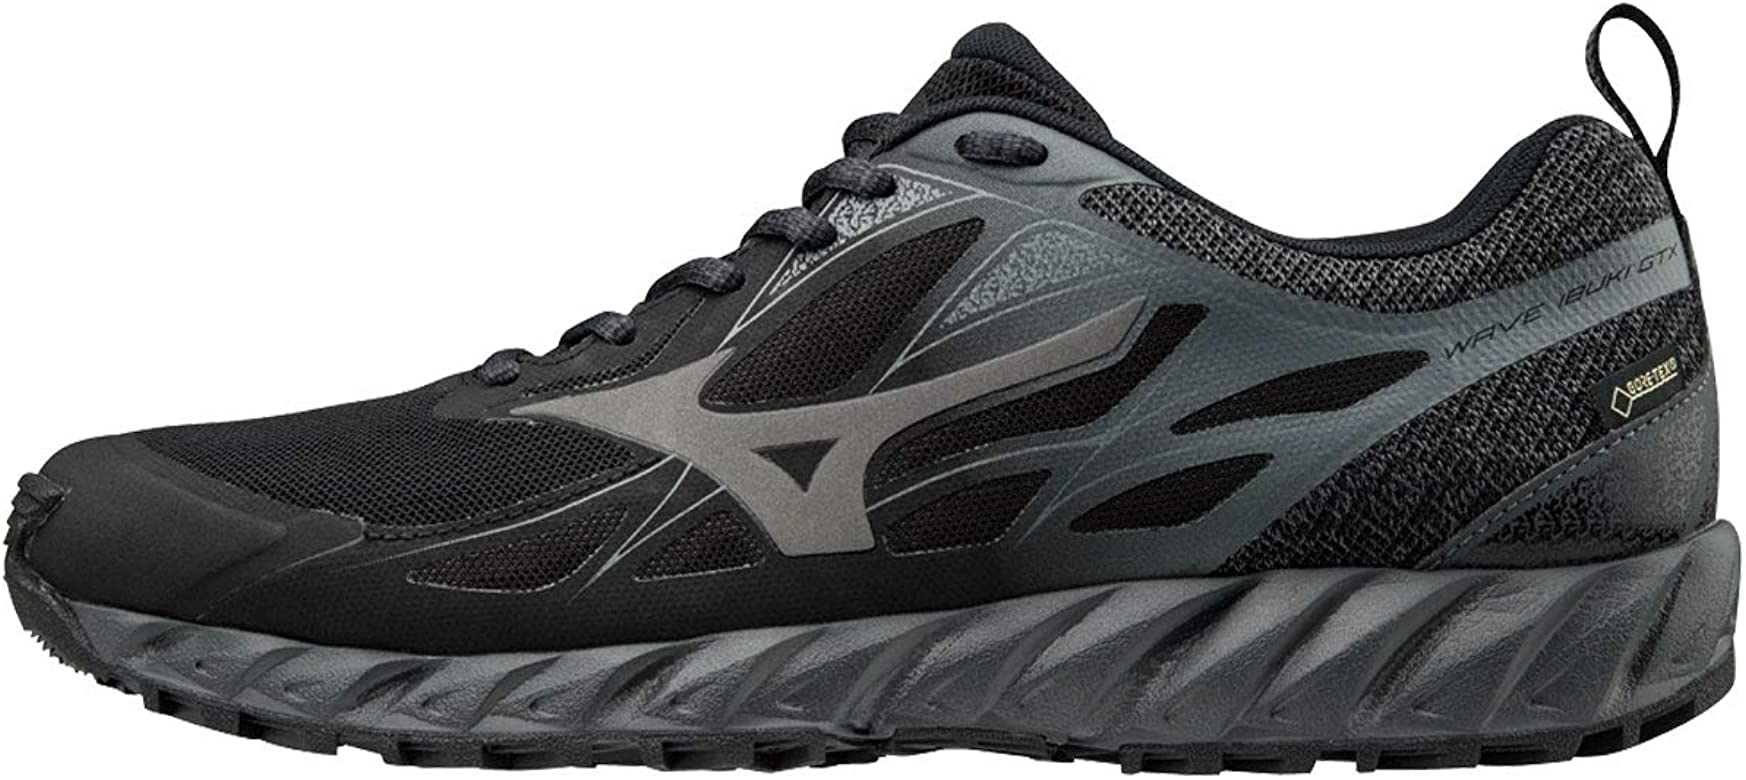 Mizuno Wave Ibuki GTX, Zapatillas para Hombre, Multicolor (Blk/Metalshad/Darkshad 001), 40 EU: Amazon.es: Zapatos y complementos